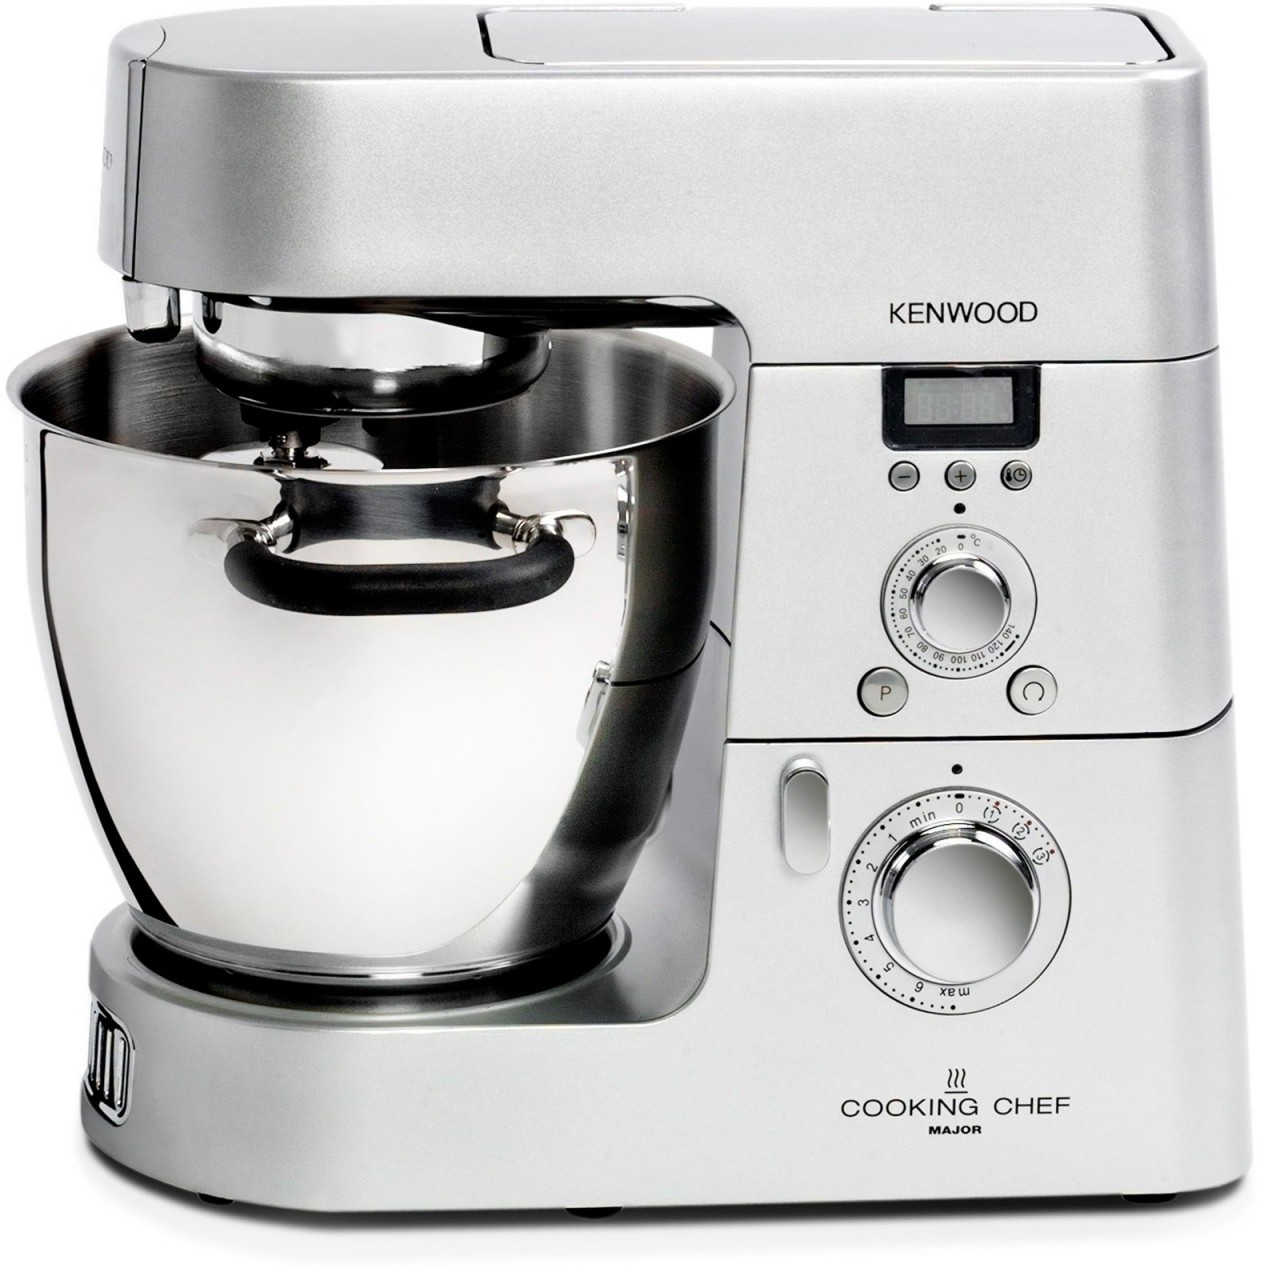 Yleiskonepaketti Kenwood Cooking Chef Major Titanium KM096